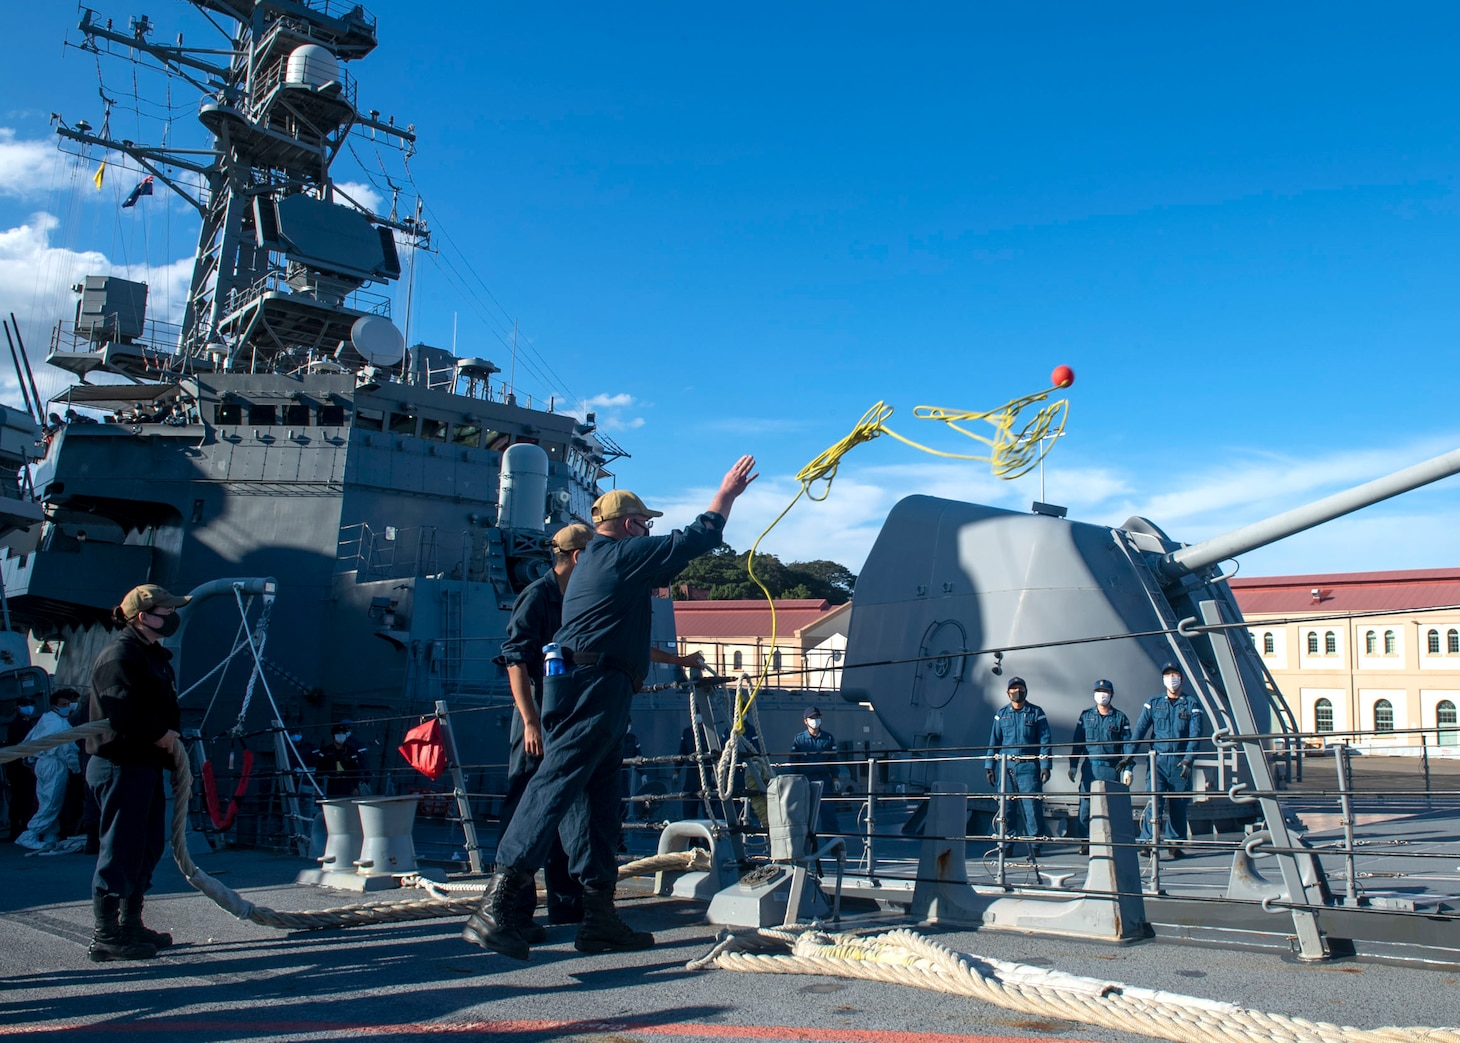 210703-N-HG846-1217 SYDNEY (July 3, 2021) – Sailors aboard Arleigh Burke-class guided-missile destroyer USS Rafael Peralta (DDG 115) throw a messenger line to sailors aboard the Japan Maritime Self Defense Force Takanami-class destroyer JS Makinami (DD 112) as they moor alongside in support of Pacific Vanguard 2021. Pacific Vanguard, an exercise involving U.S., Australian, Republic of Korea navies and Japan Maritime Self Defense Force, is designed to strengthen maritime operations in the multilateral environment. (U.S. Navy photo by Mass Communication Specialist 3rd Class Daniel Serianni)